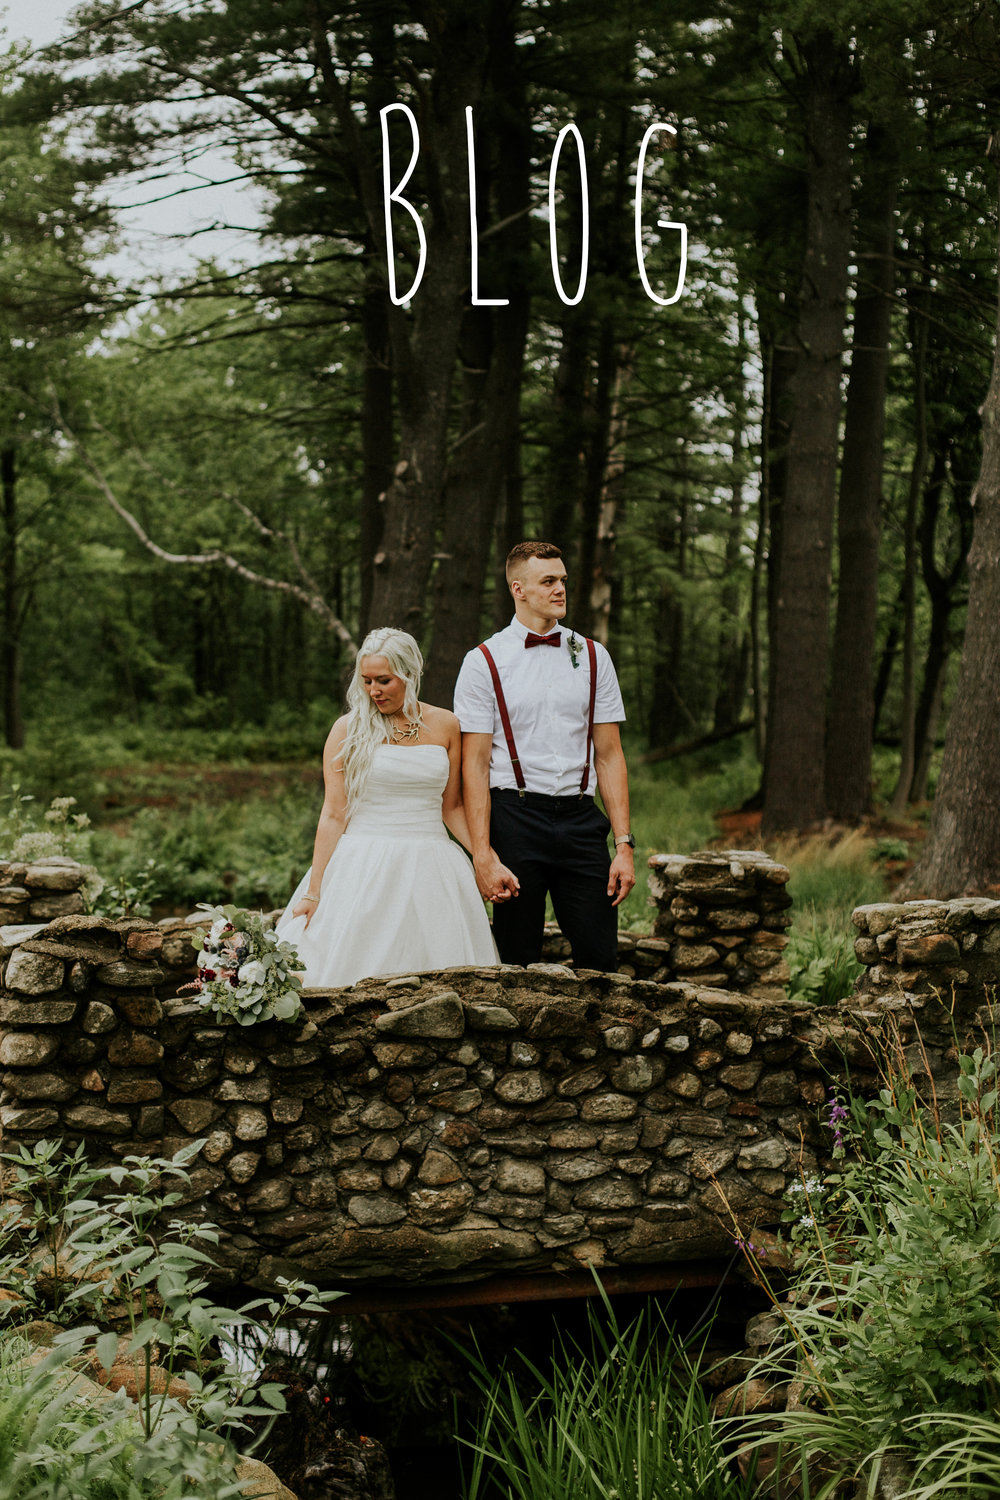 Elopement + Intimate Wedding Photographer